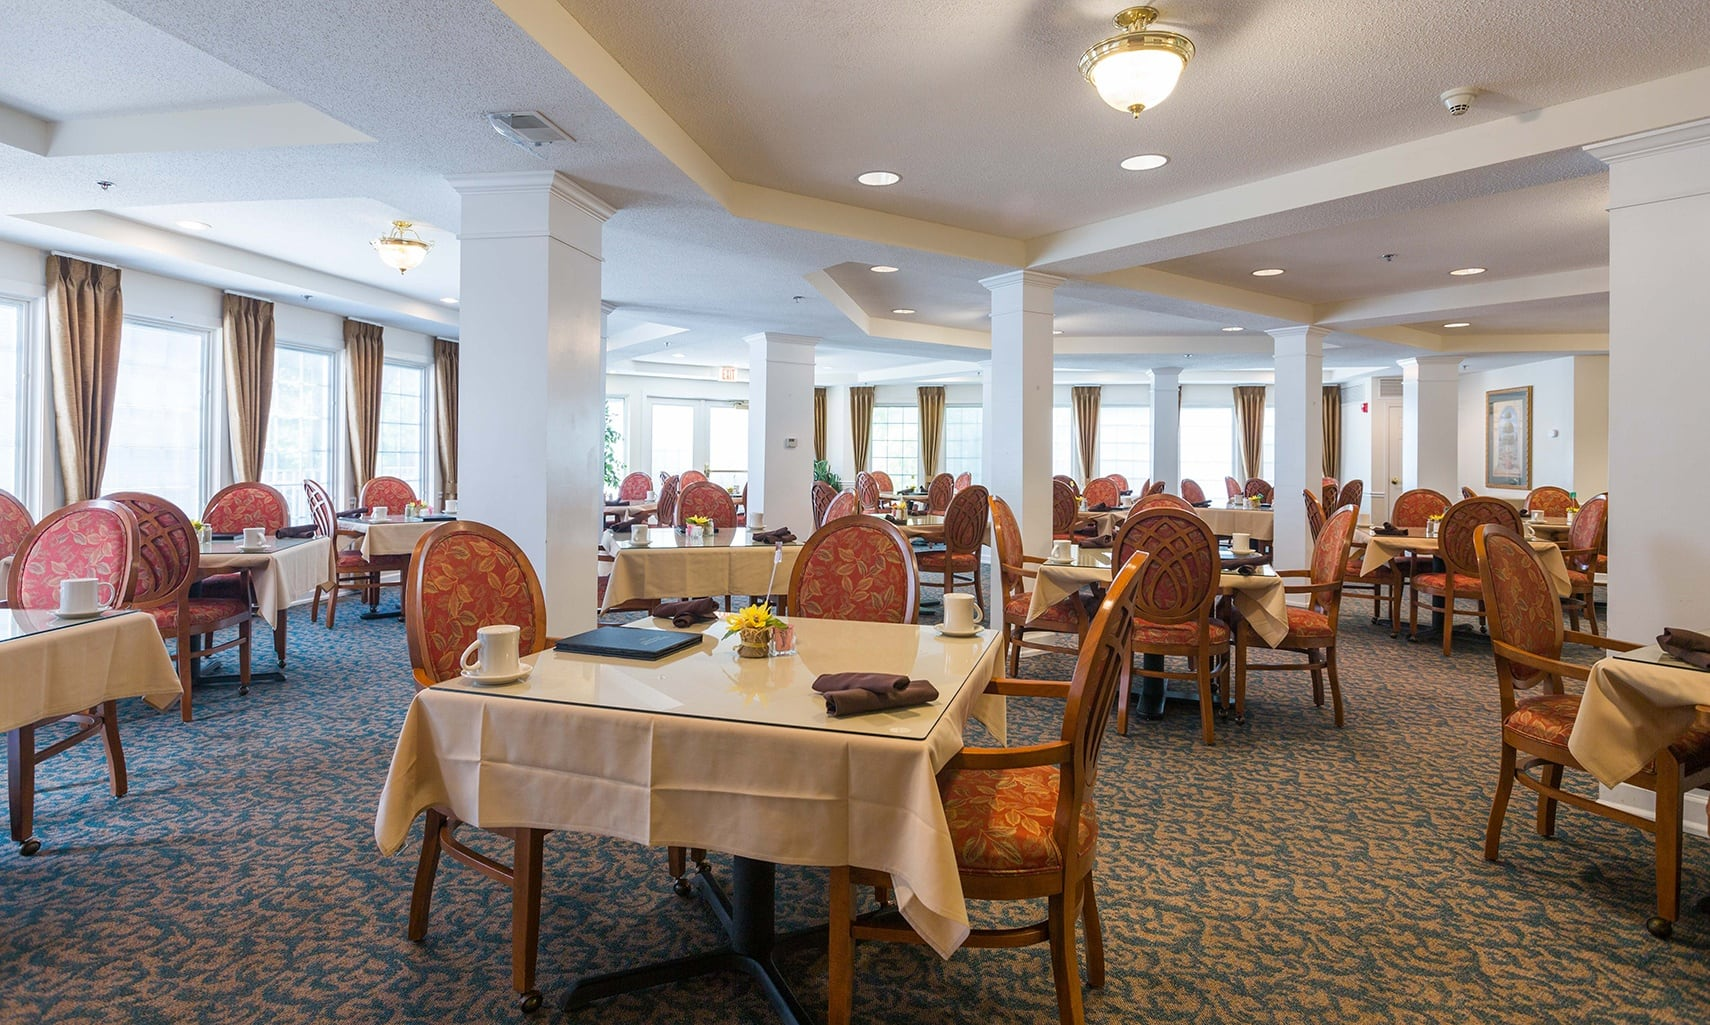 Dining room at The Homestead at Hickory View Retirement Community